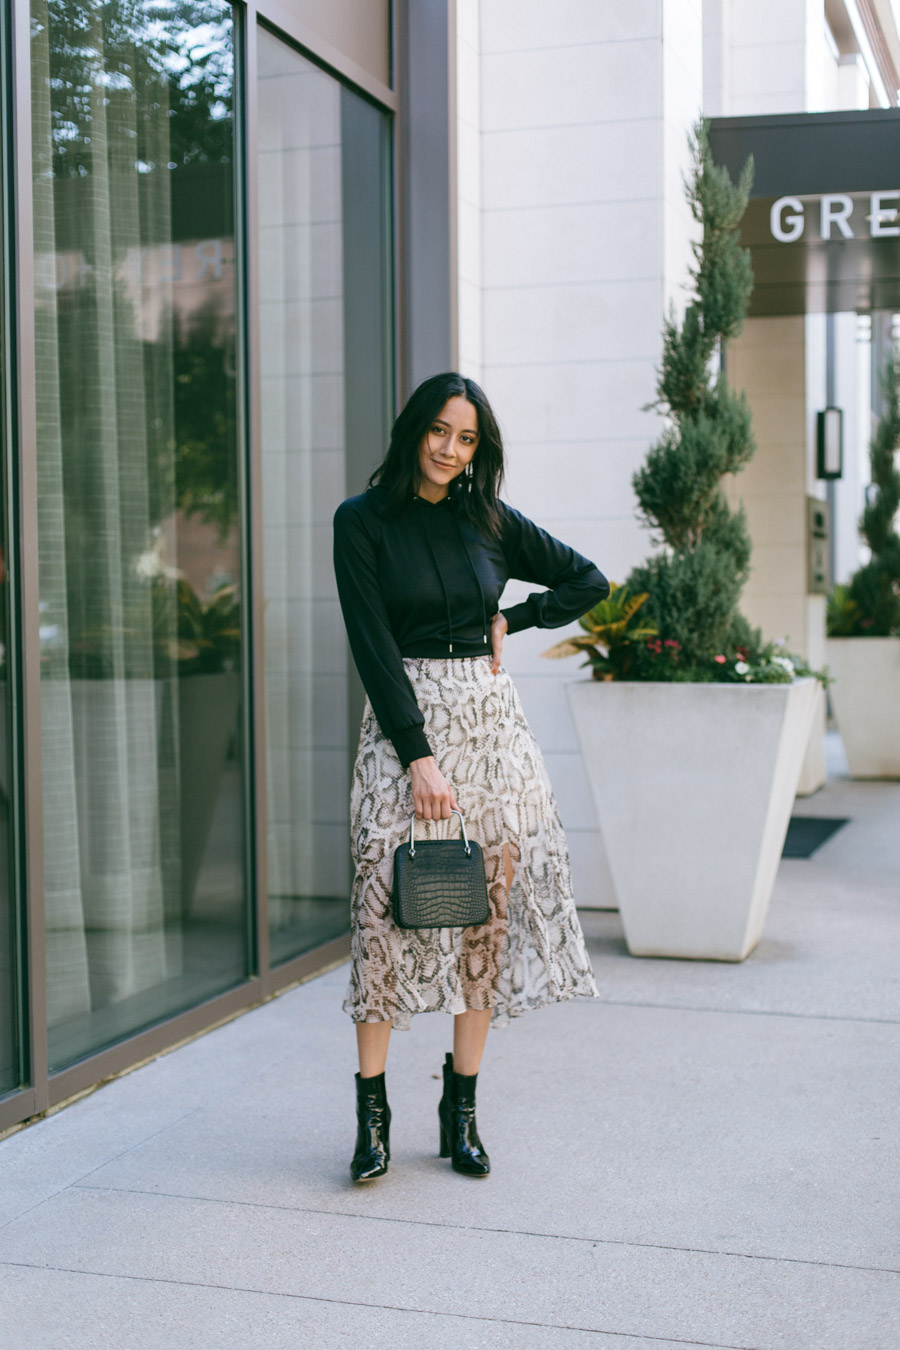 Lilly Beltran shares 3 ways to wear the snake print trend this season.